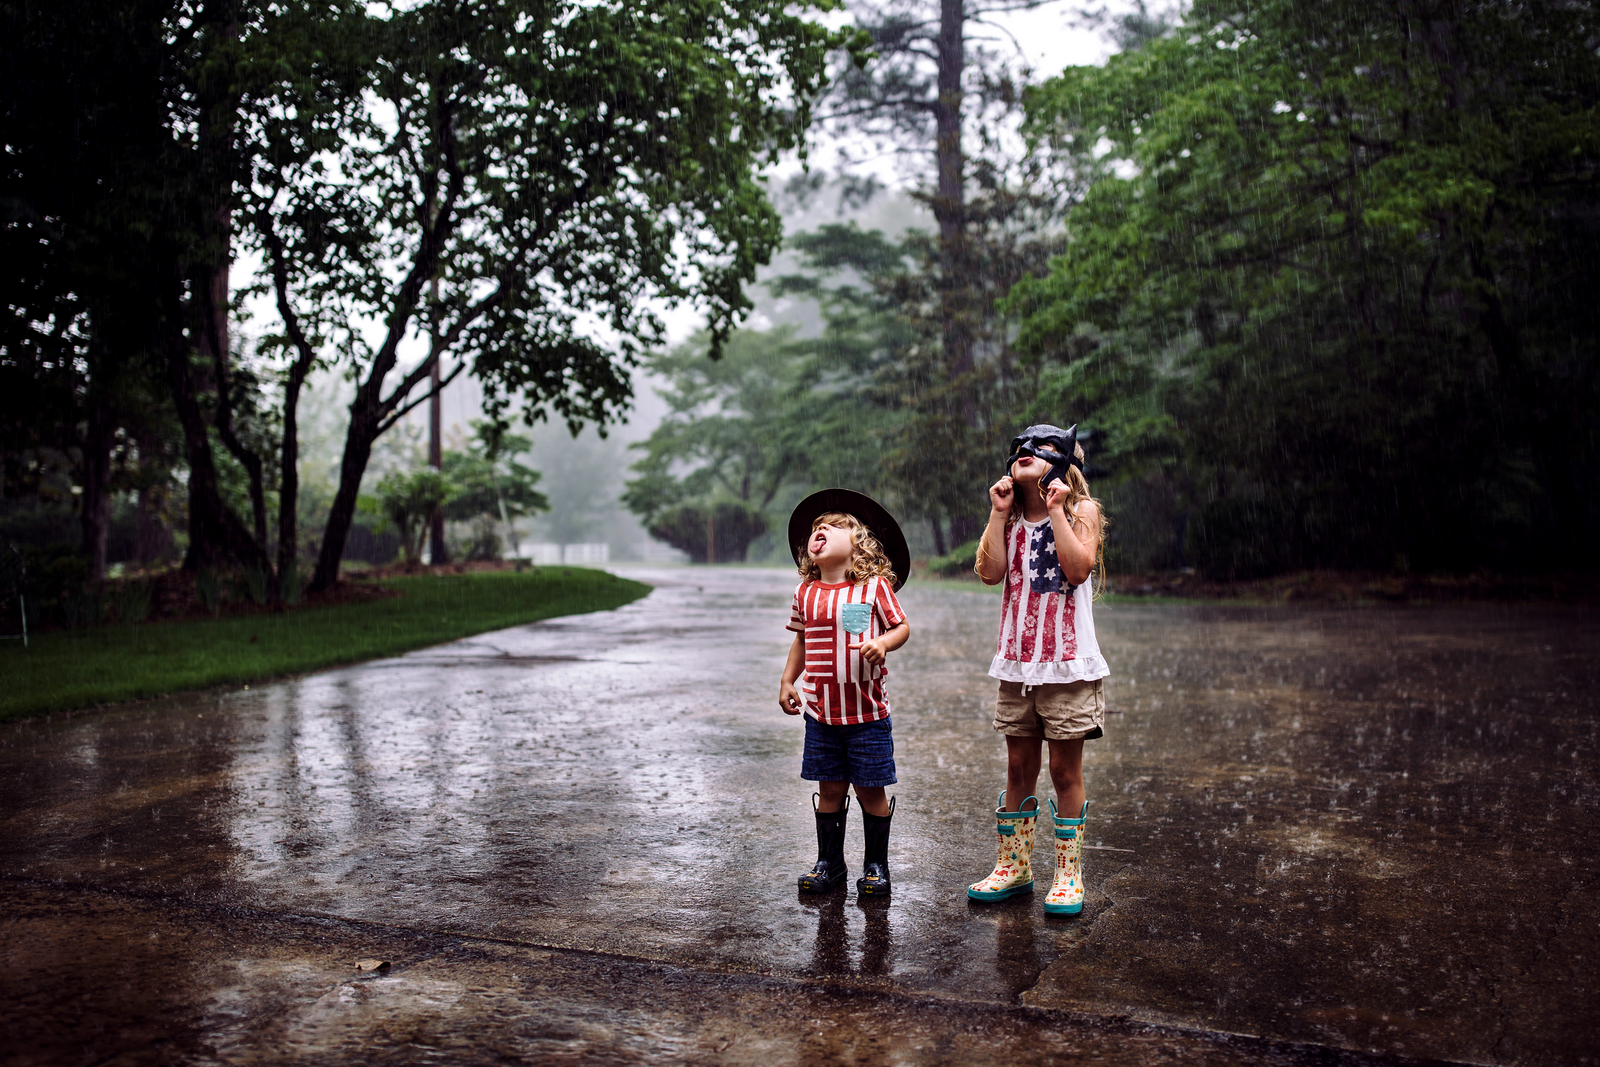 family photographer, columbus, ga, atlanta, documentary, photojournalism, kids playing rain, catching raindrops_7799